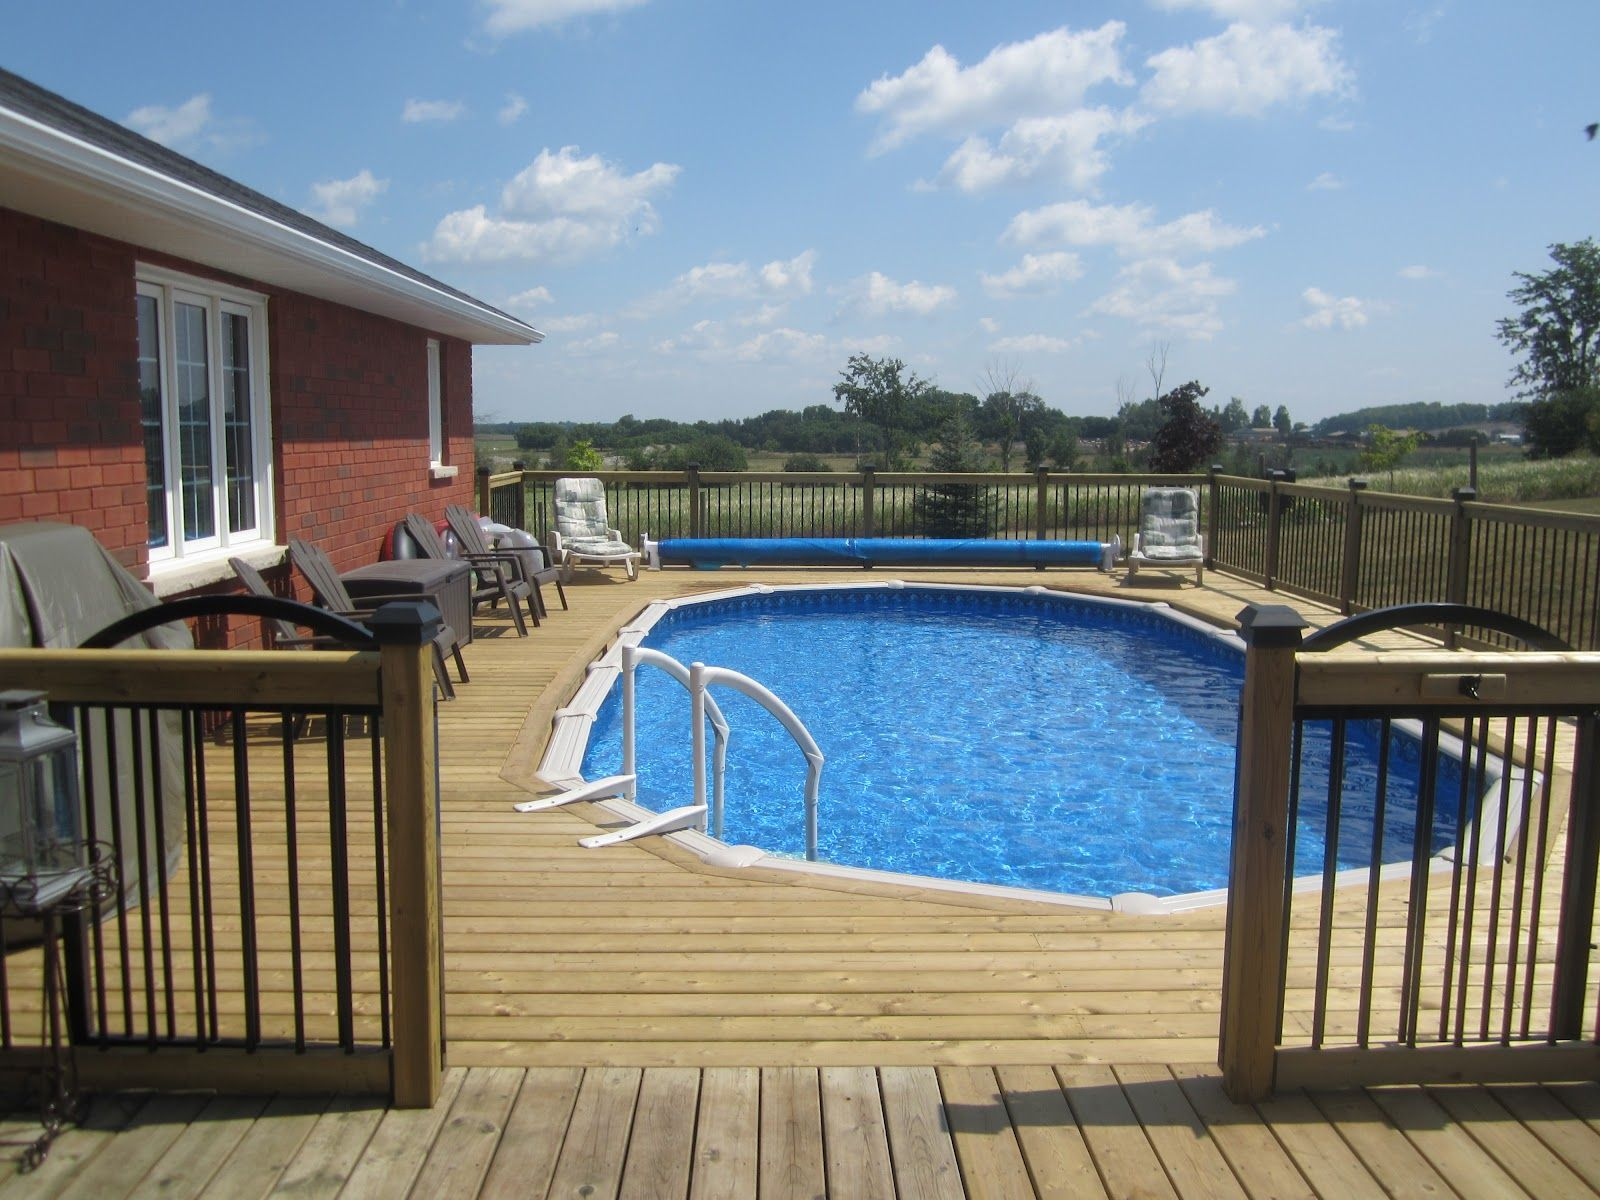 Decks built off back of house with above ground pool for Deck from house to above ground pool